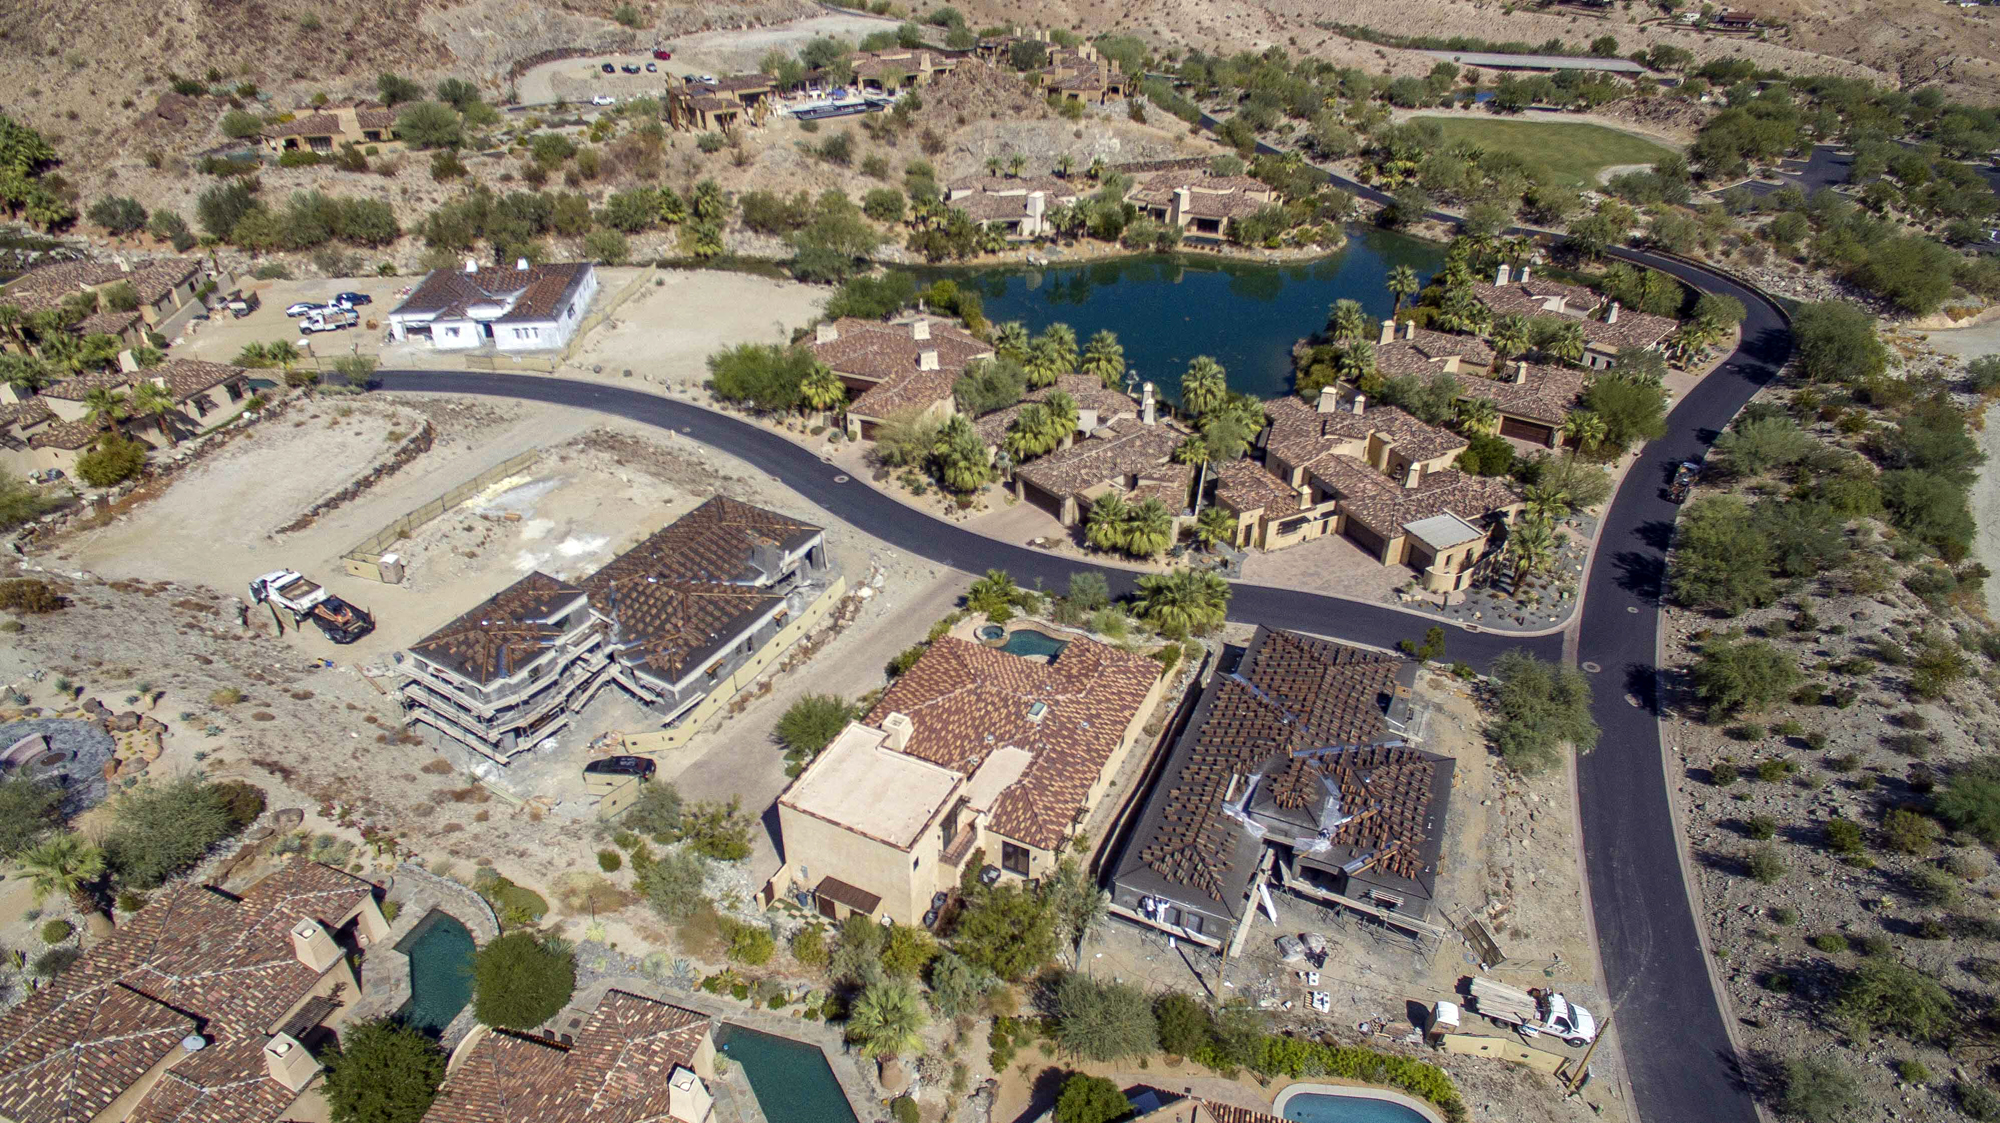 Aerial view of Stone Eagle Homes